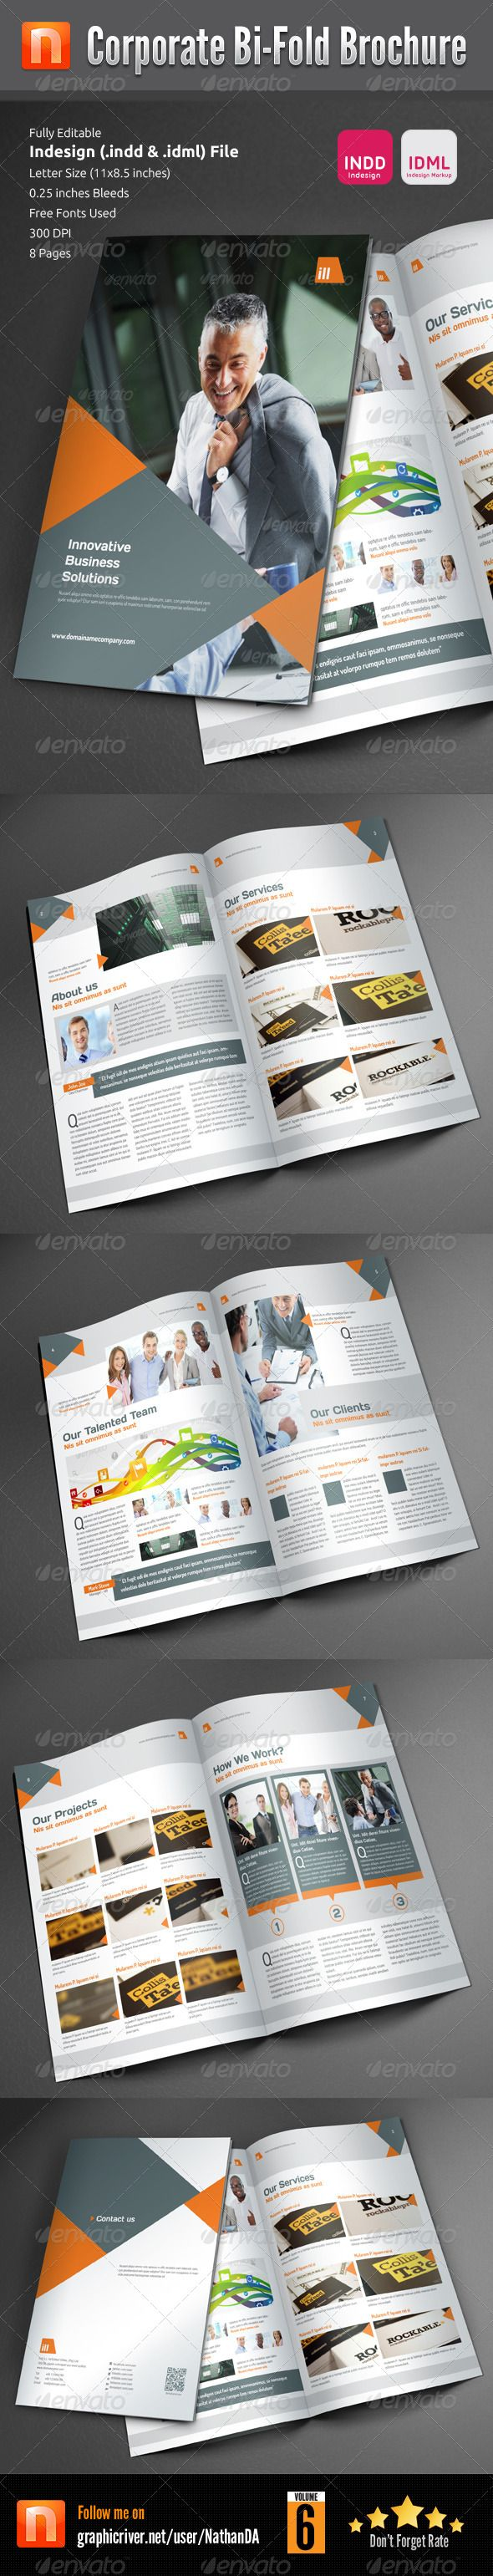 Best Brochures Templates Images On Pinterest Brochure - Editable brochure templates